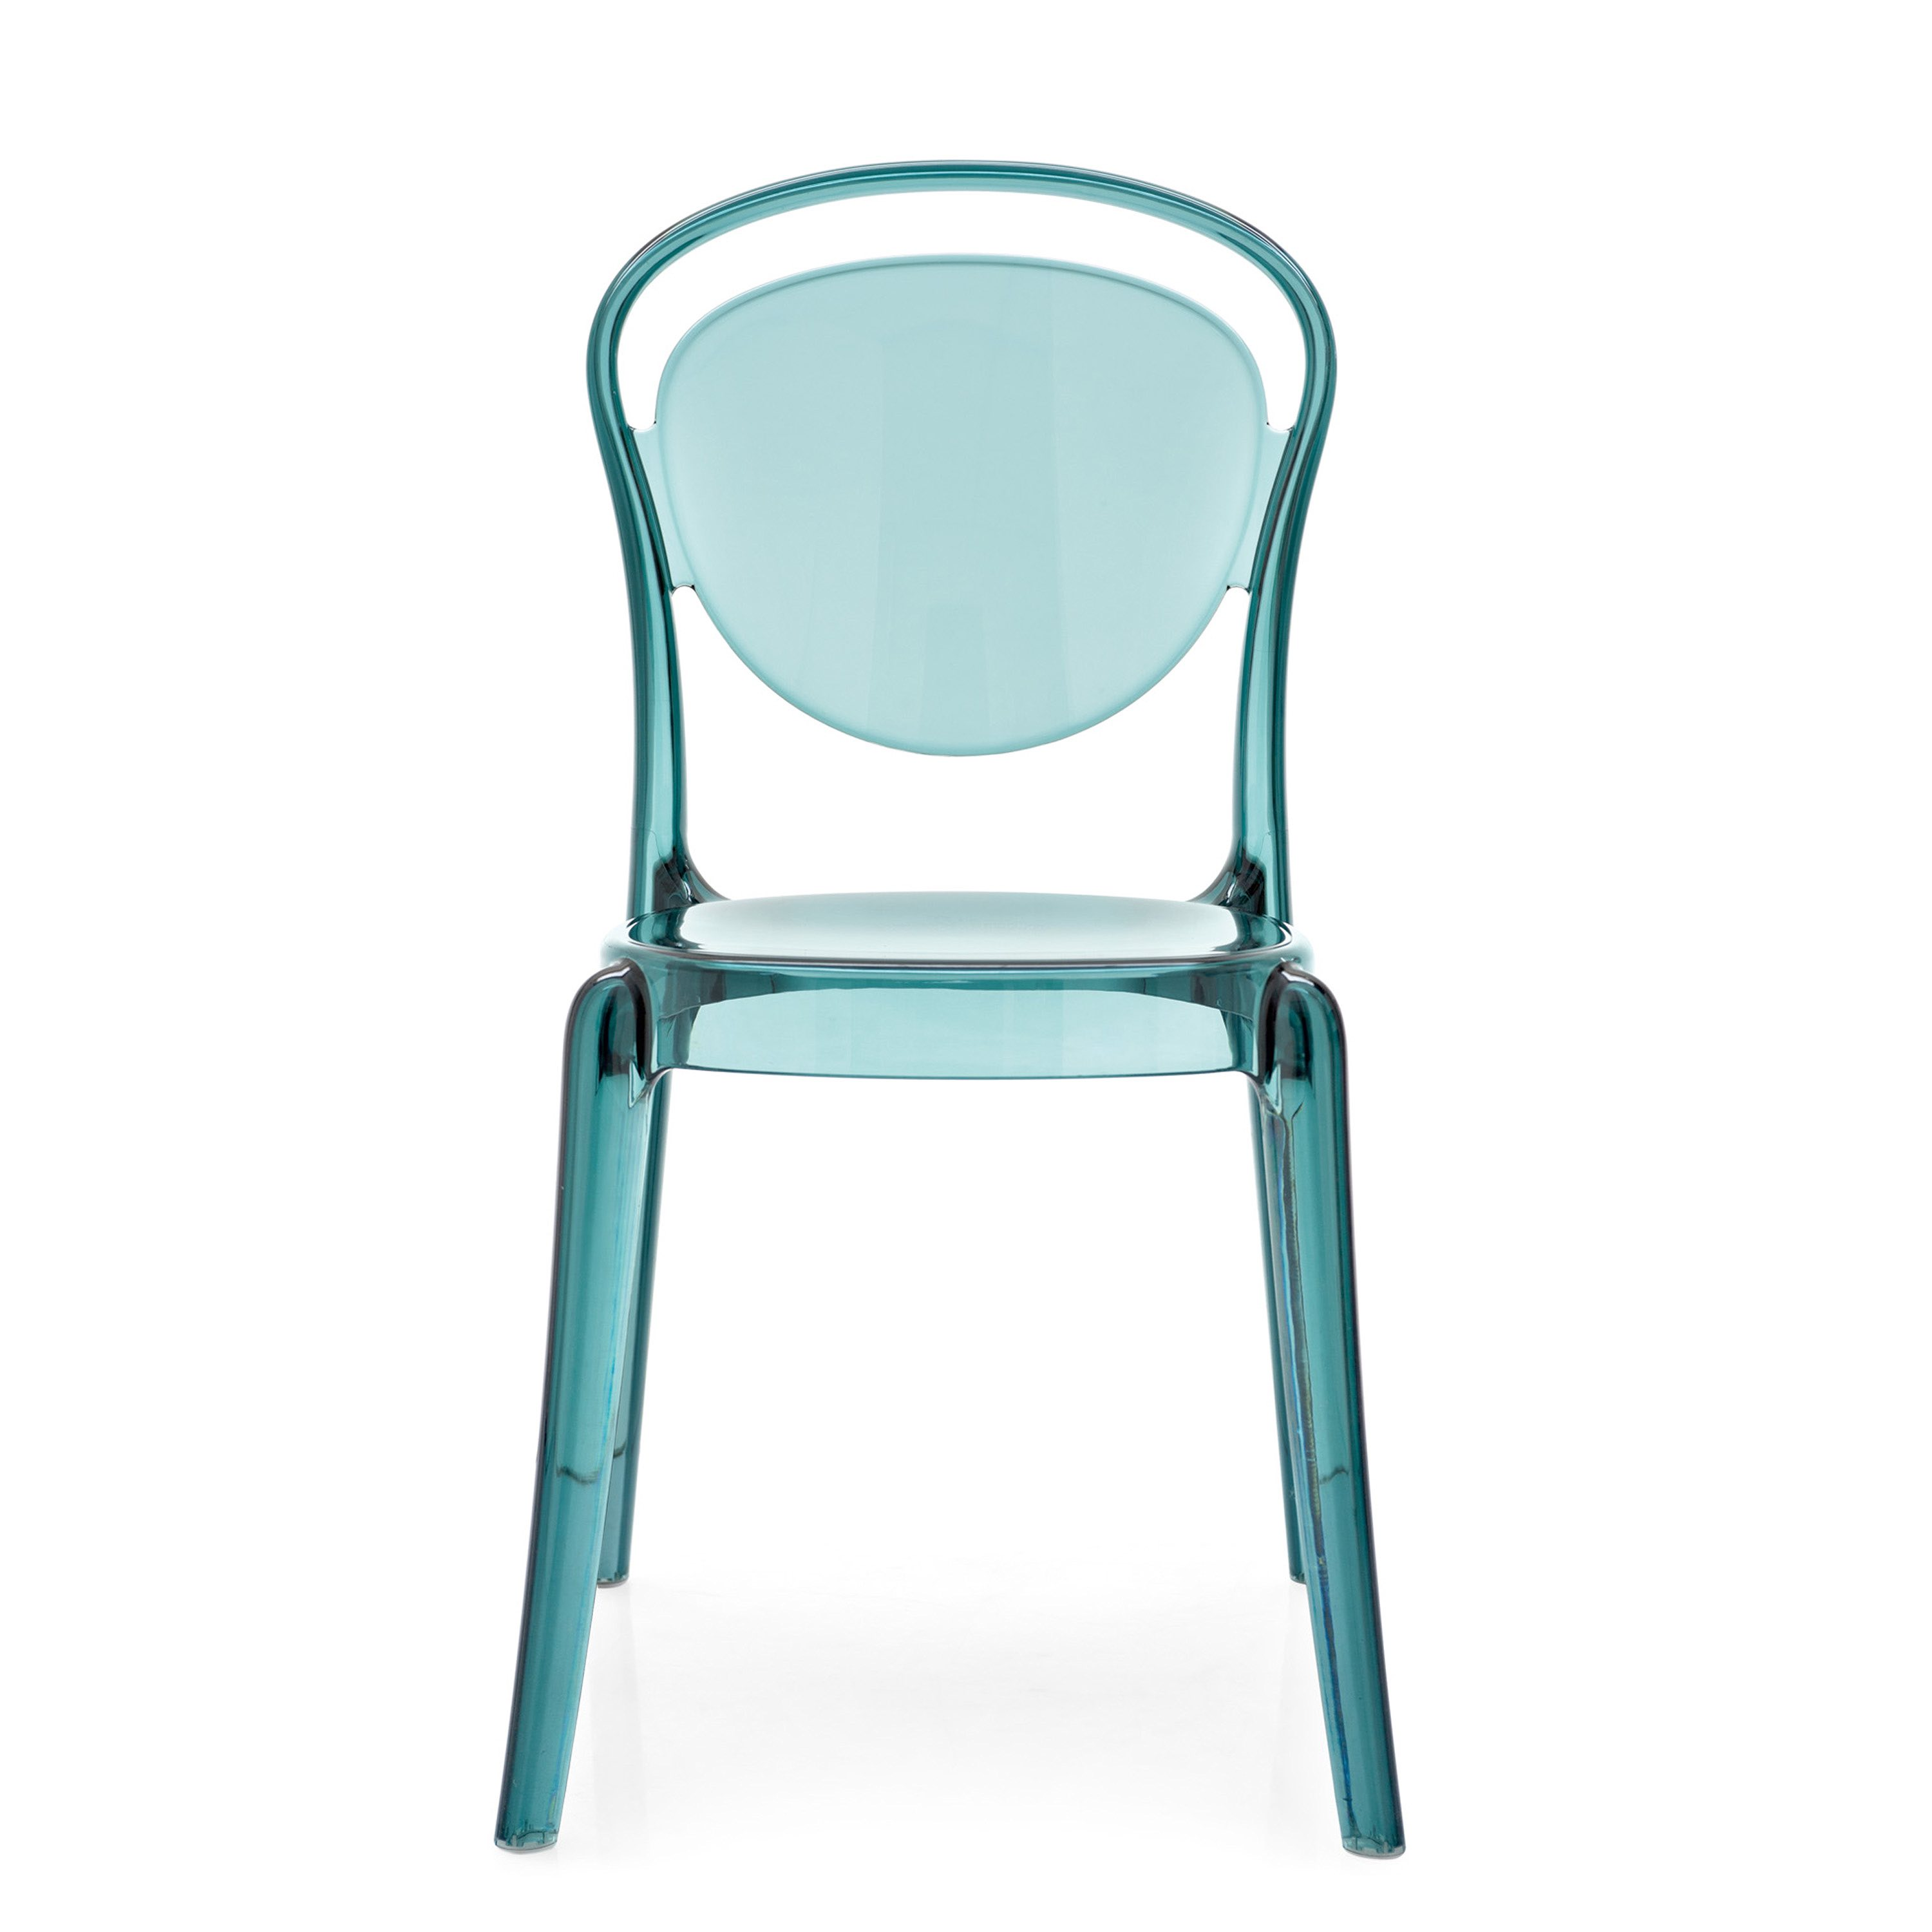 CALLIGARIS The 10 best outdoor chairs in pictures